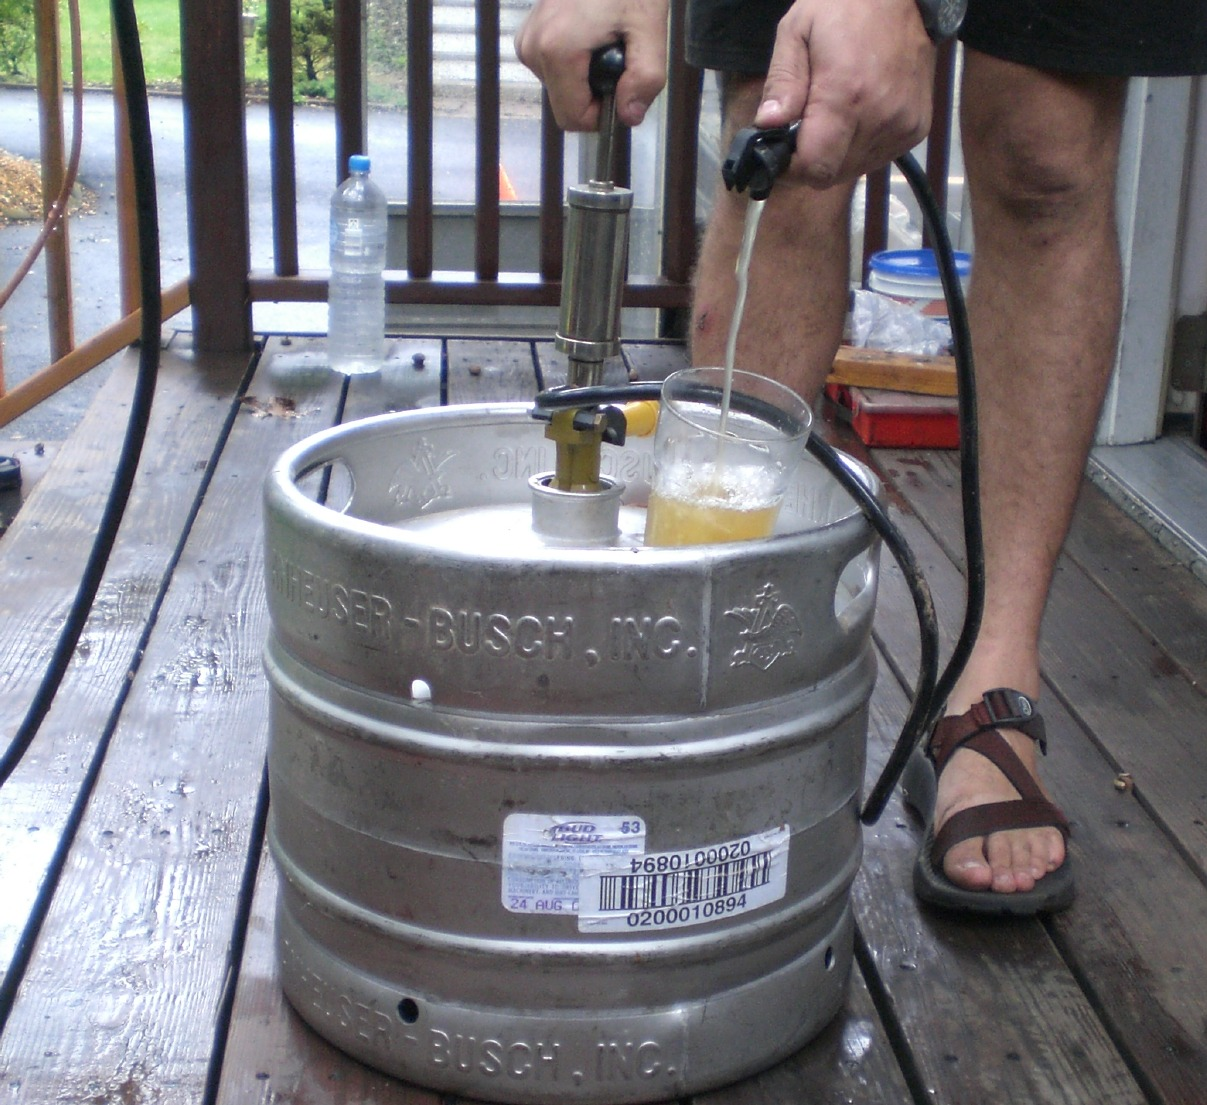 Bud Light Mini Kegs http://cryengineassets.com/28/how-much-is-a-half-keg-of-natty-light